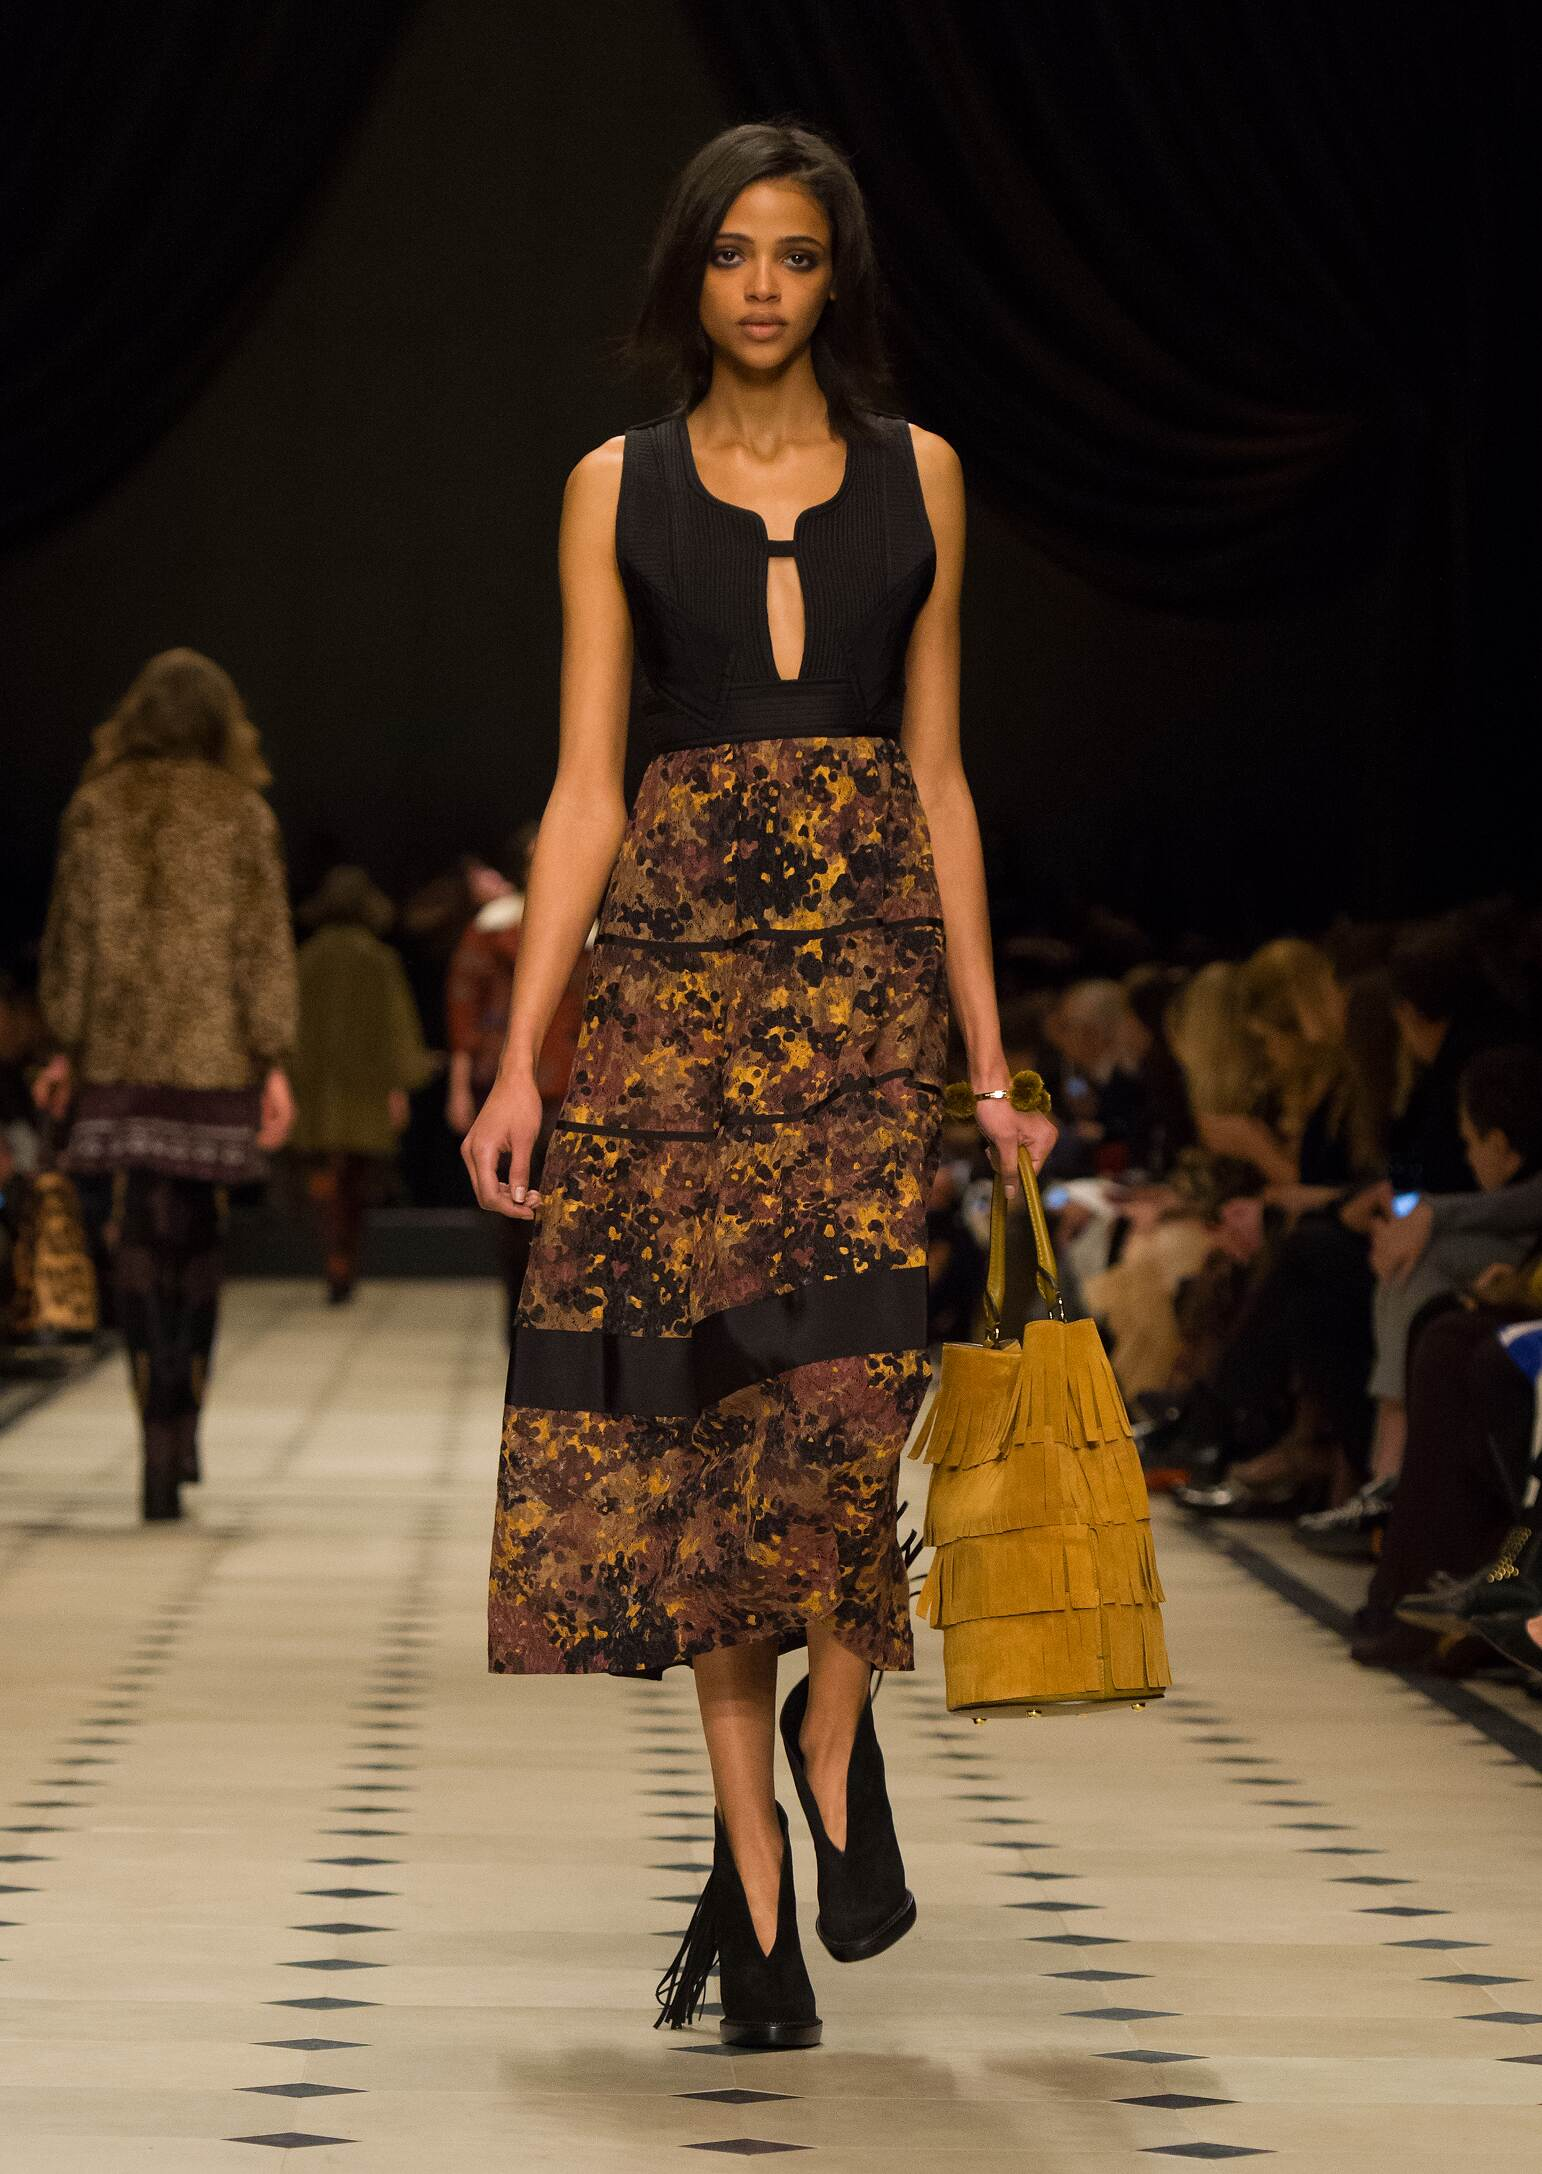 Catwalk Burberry Prorsum Collection Fashion Show Winter 2015